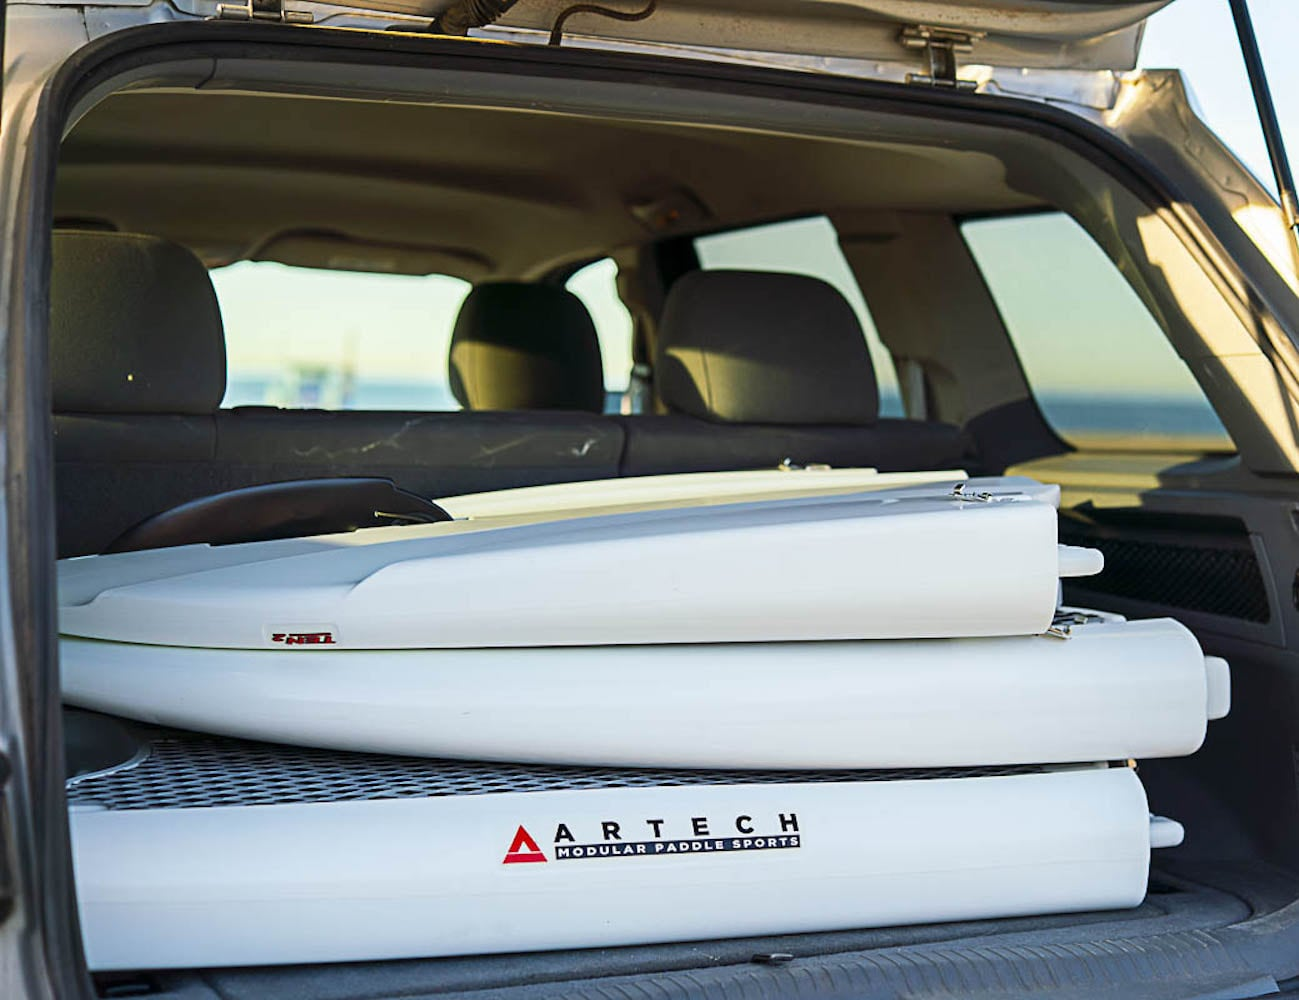 Easy Eddy Three-Piece Modular Paddle Board easily fits in your vehicle